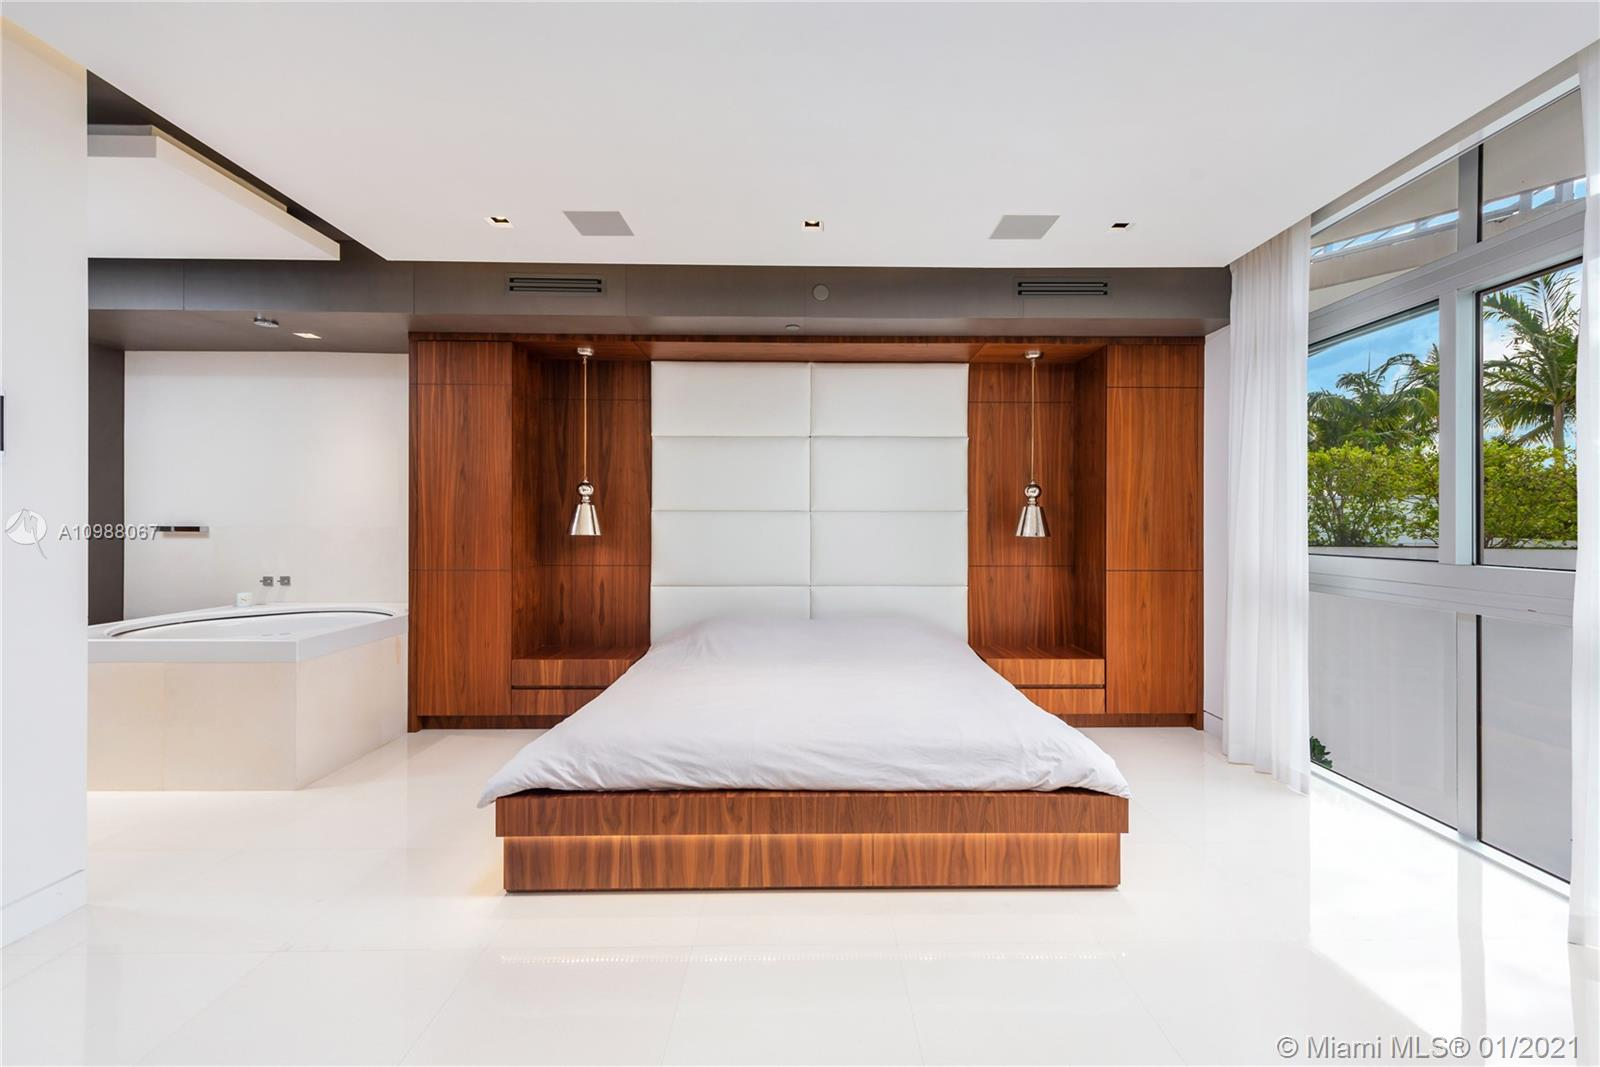 2001 Meridian Ave # 311, Miami Beach, Florida 33139, 2 Bedrooms Bedrooms, ,2 BathroomsBathrooms,Residential,For Sale,2001 Meridian Ave # 311,A10988067